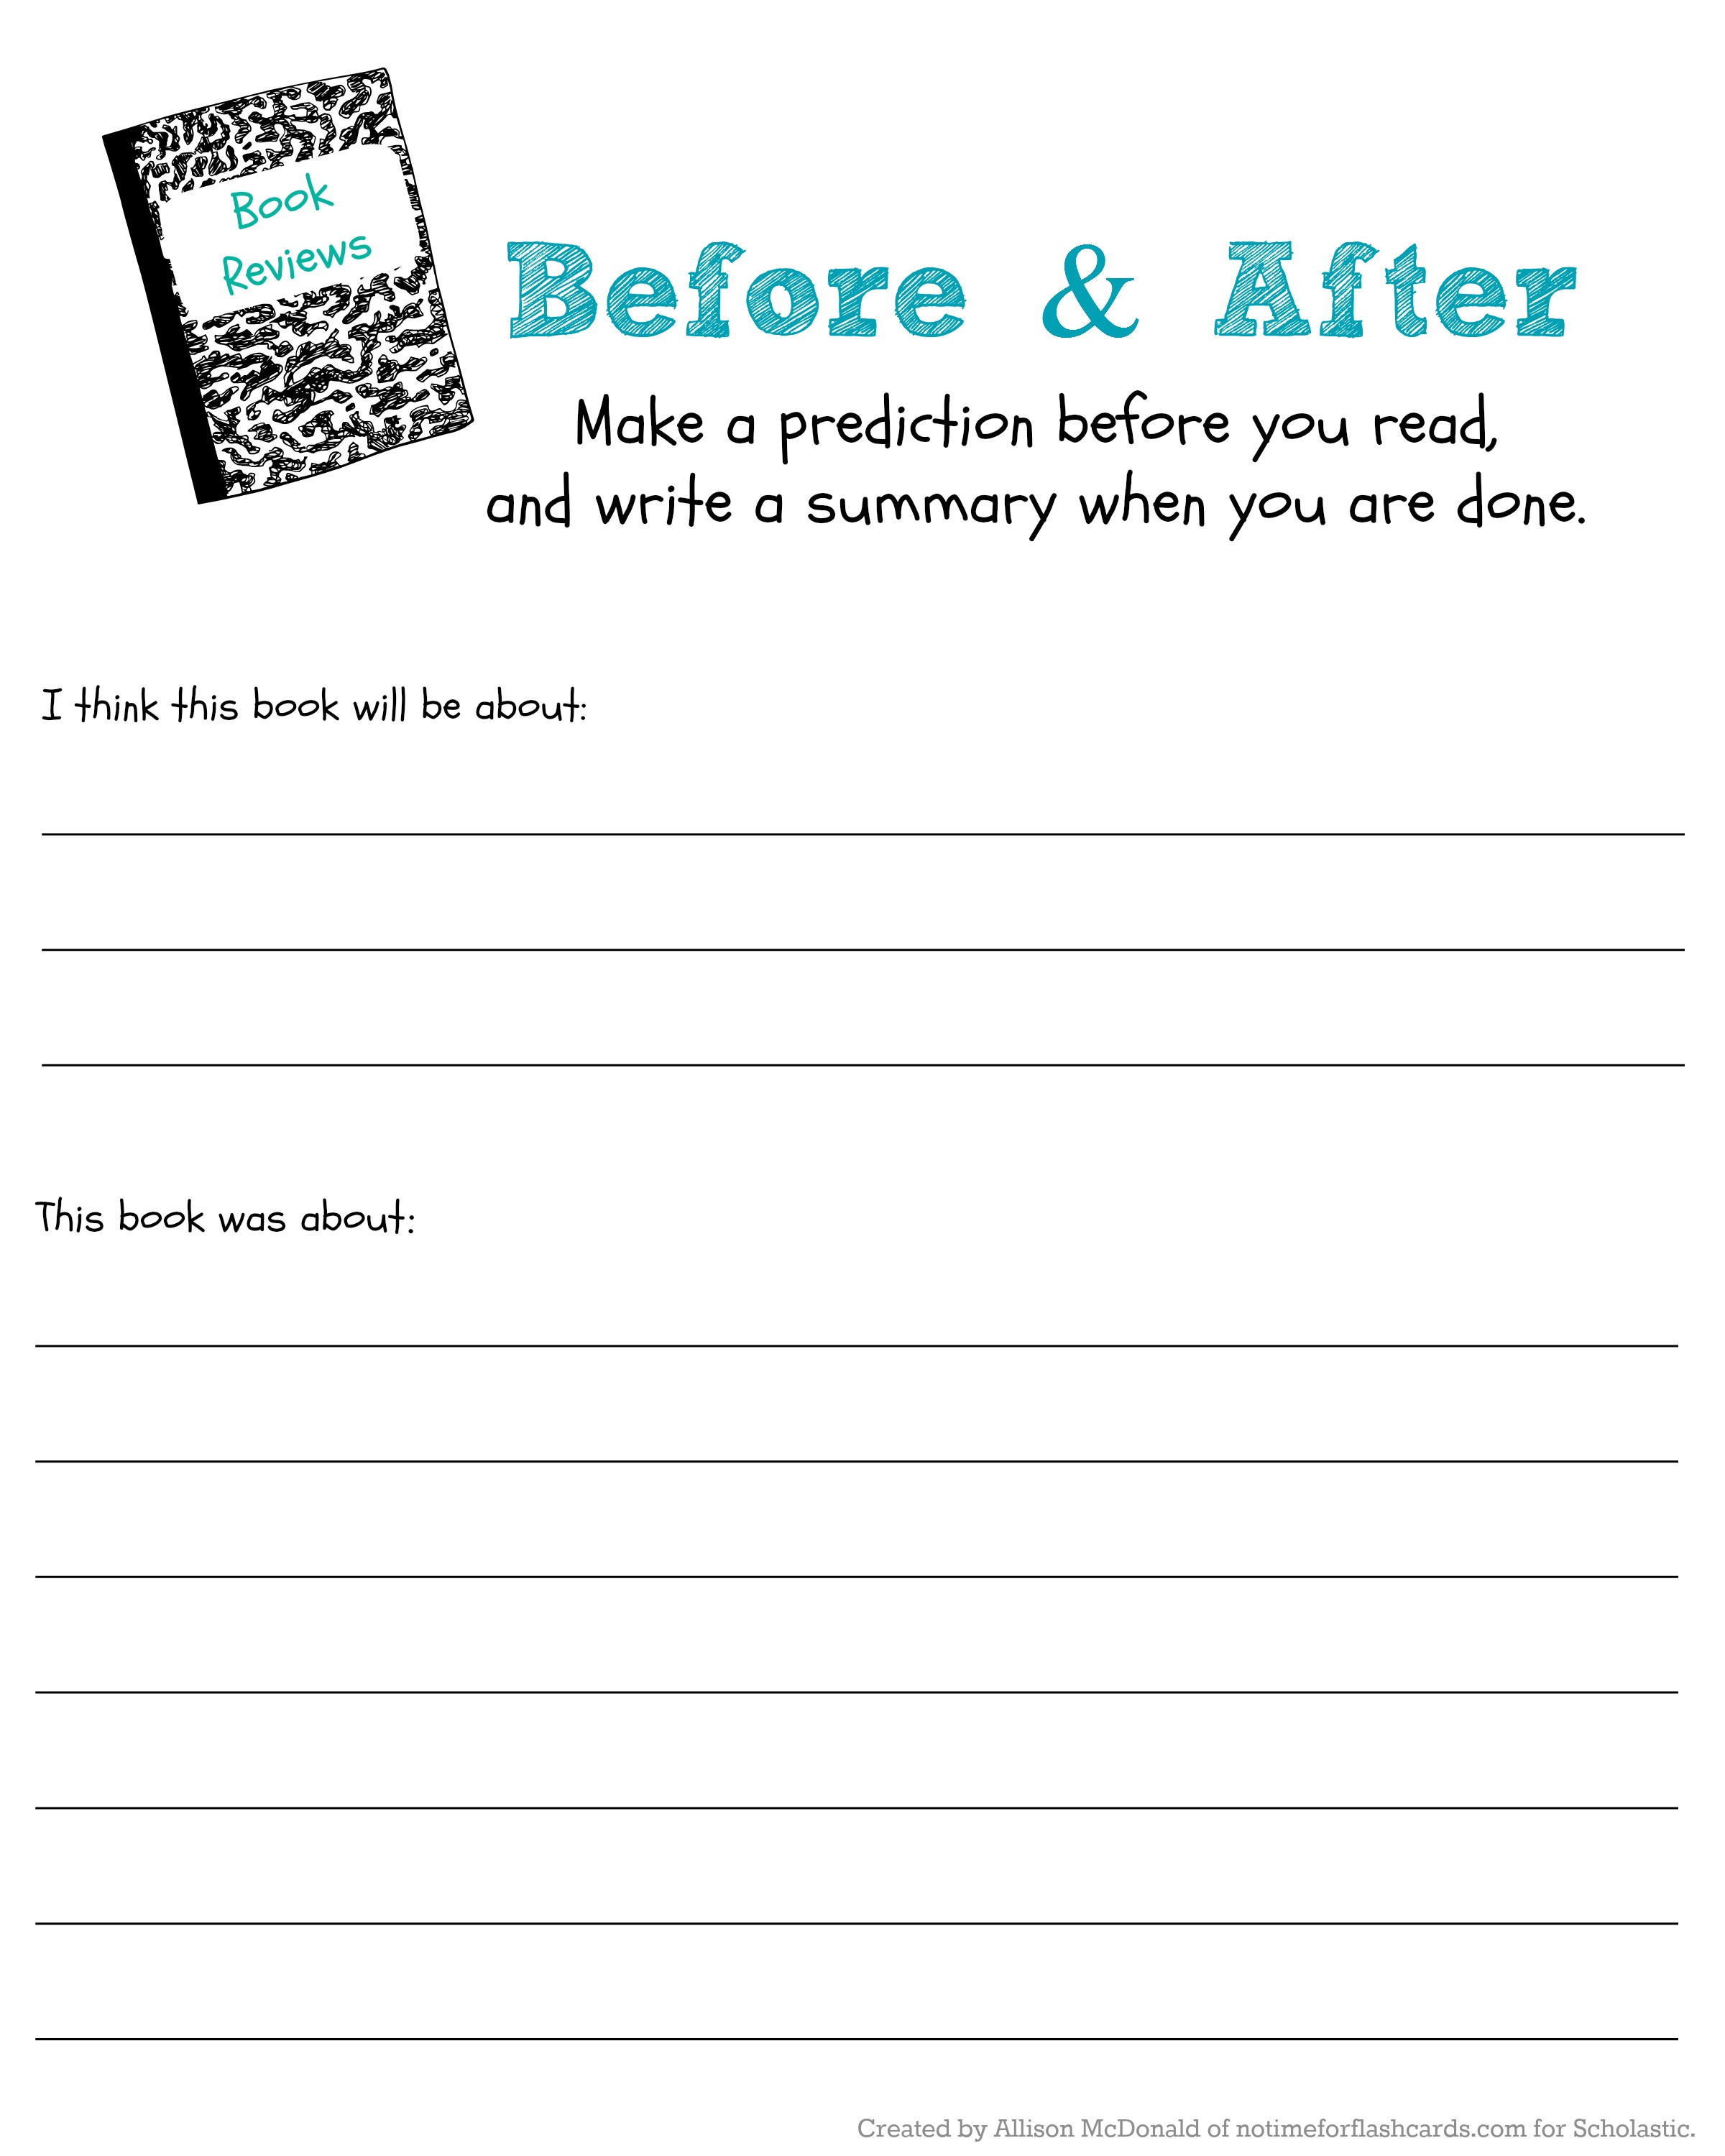 Making Predictions Worksheets 2nd Grade Judge A Book by Its Cover to Predict & Read